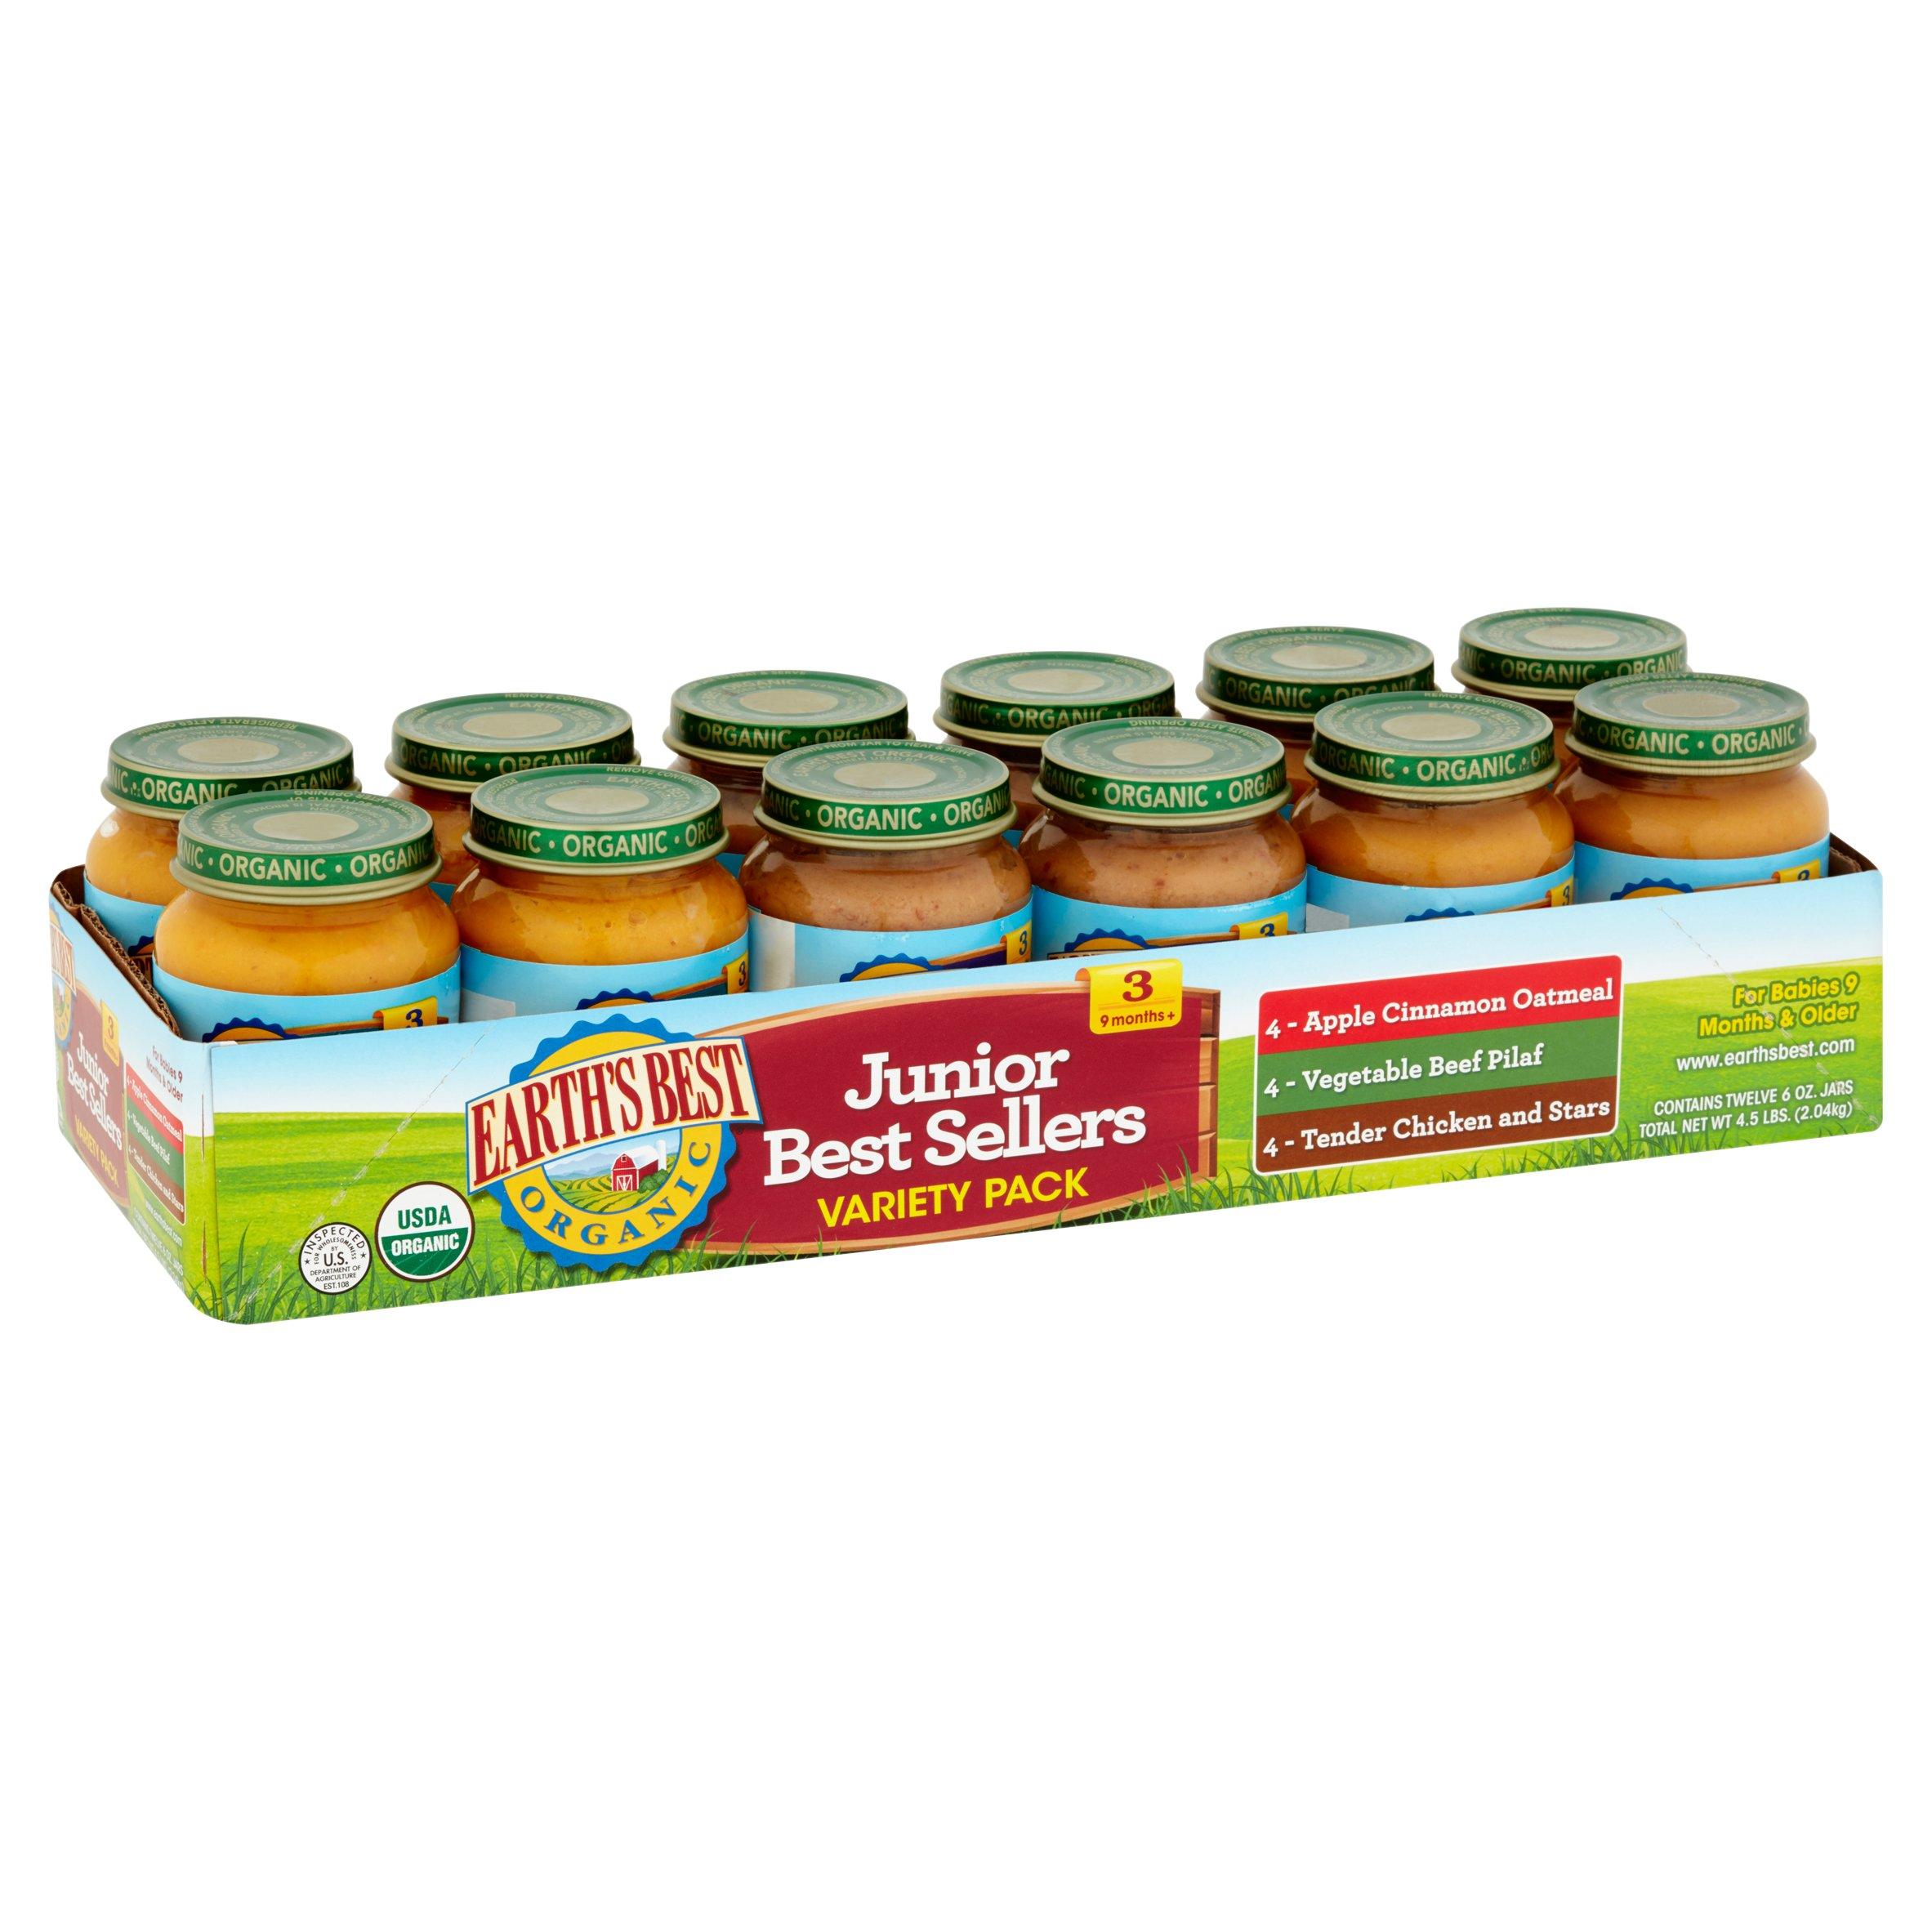 Earth's Best Organic Baby Food Best Sellers Variety Pack Baby Food, 6 oz, 12 count